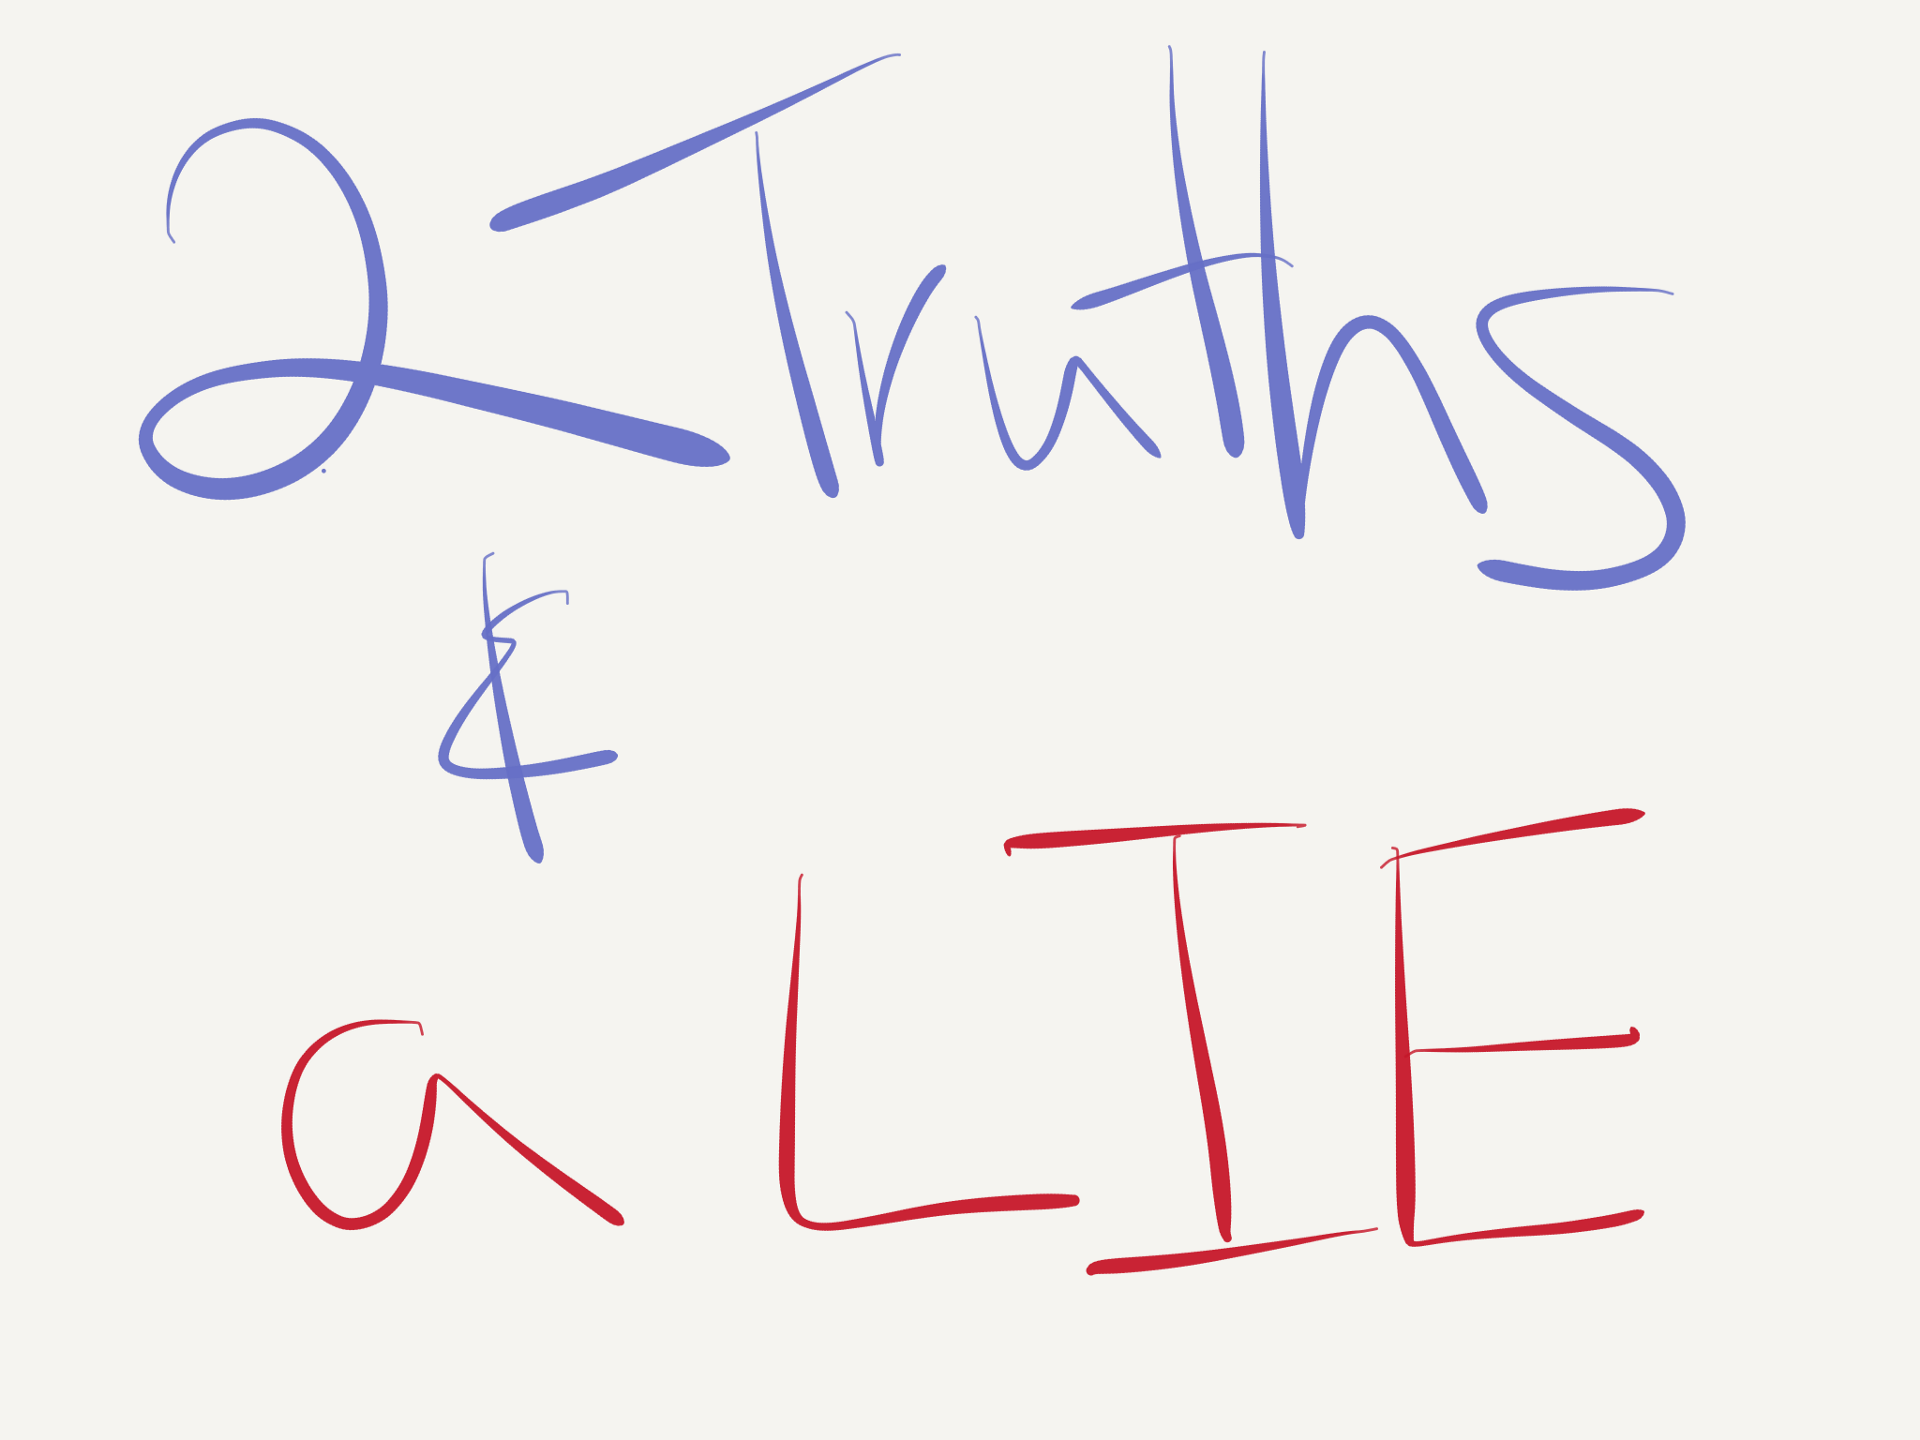 Two Truths A Liedata And Pharma Advertising Dj Patil Medium - Know adverts lie just much will shock